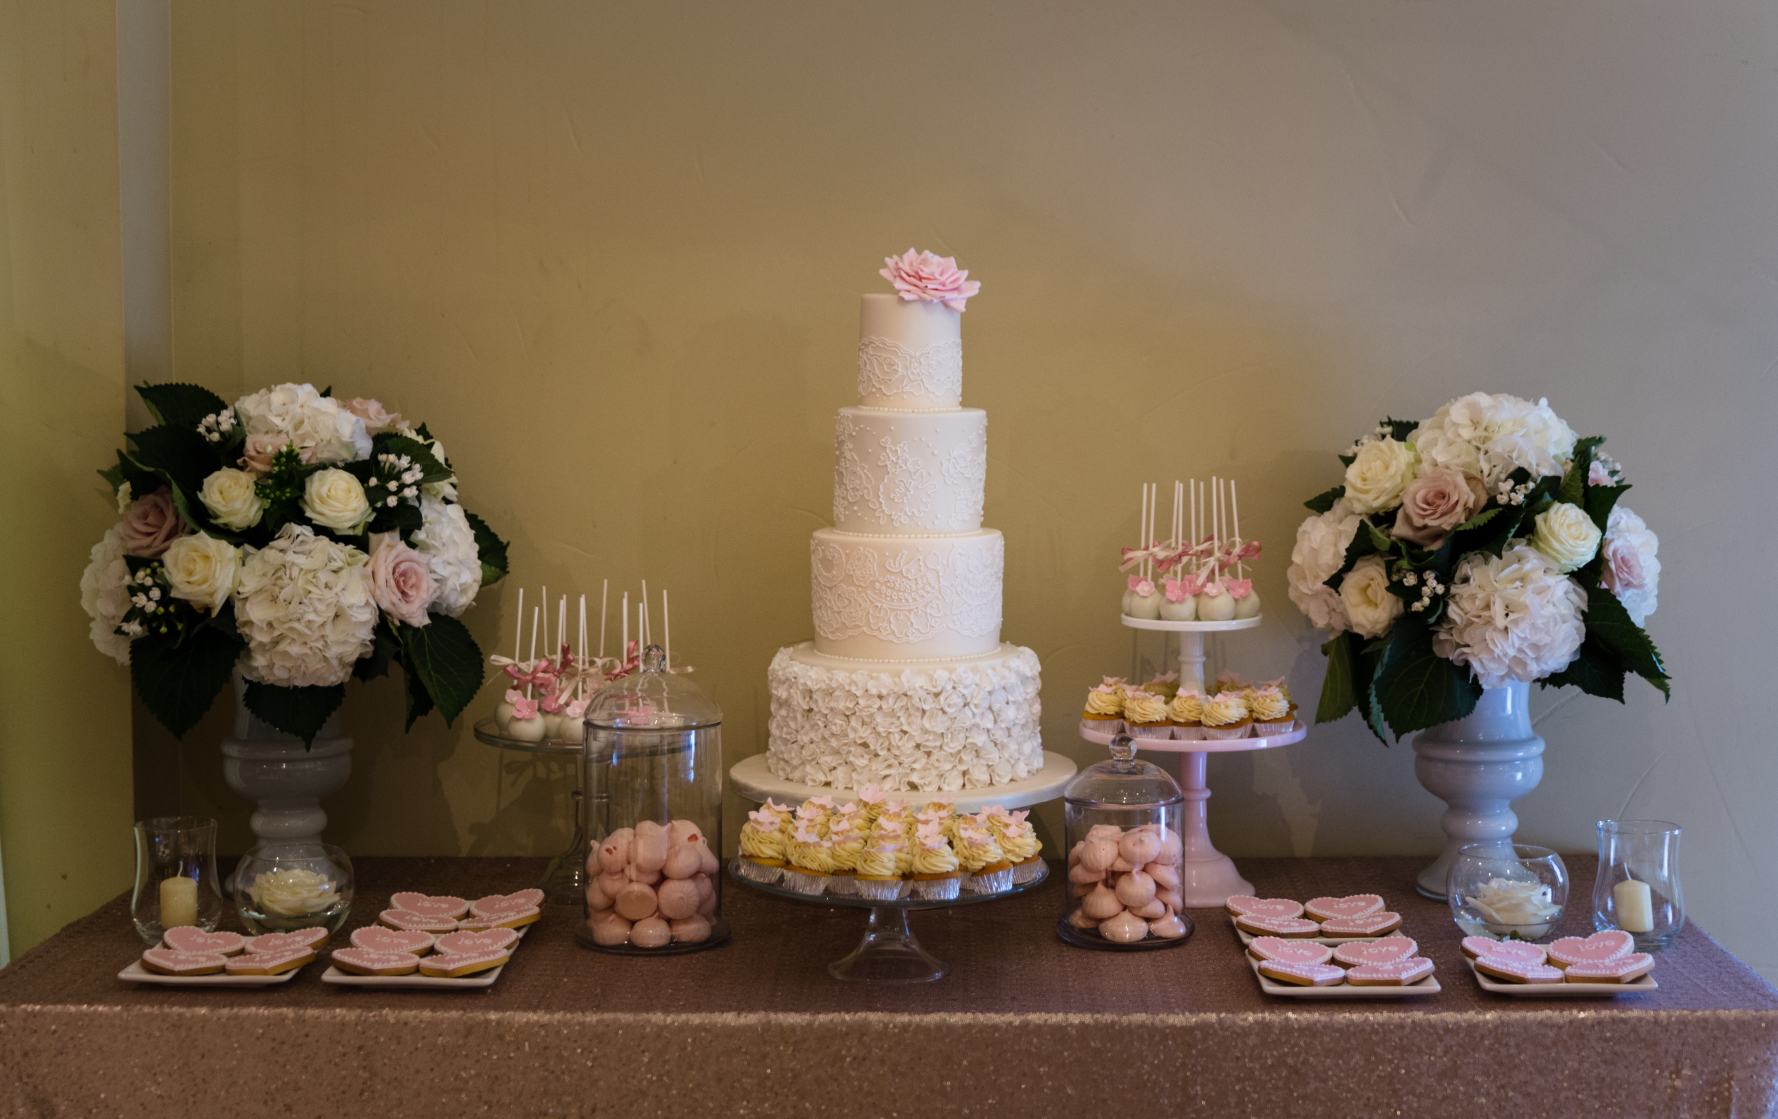 Amanda and Harry's Wedding Cake and Dessert Table